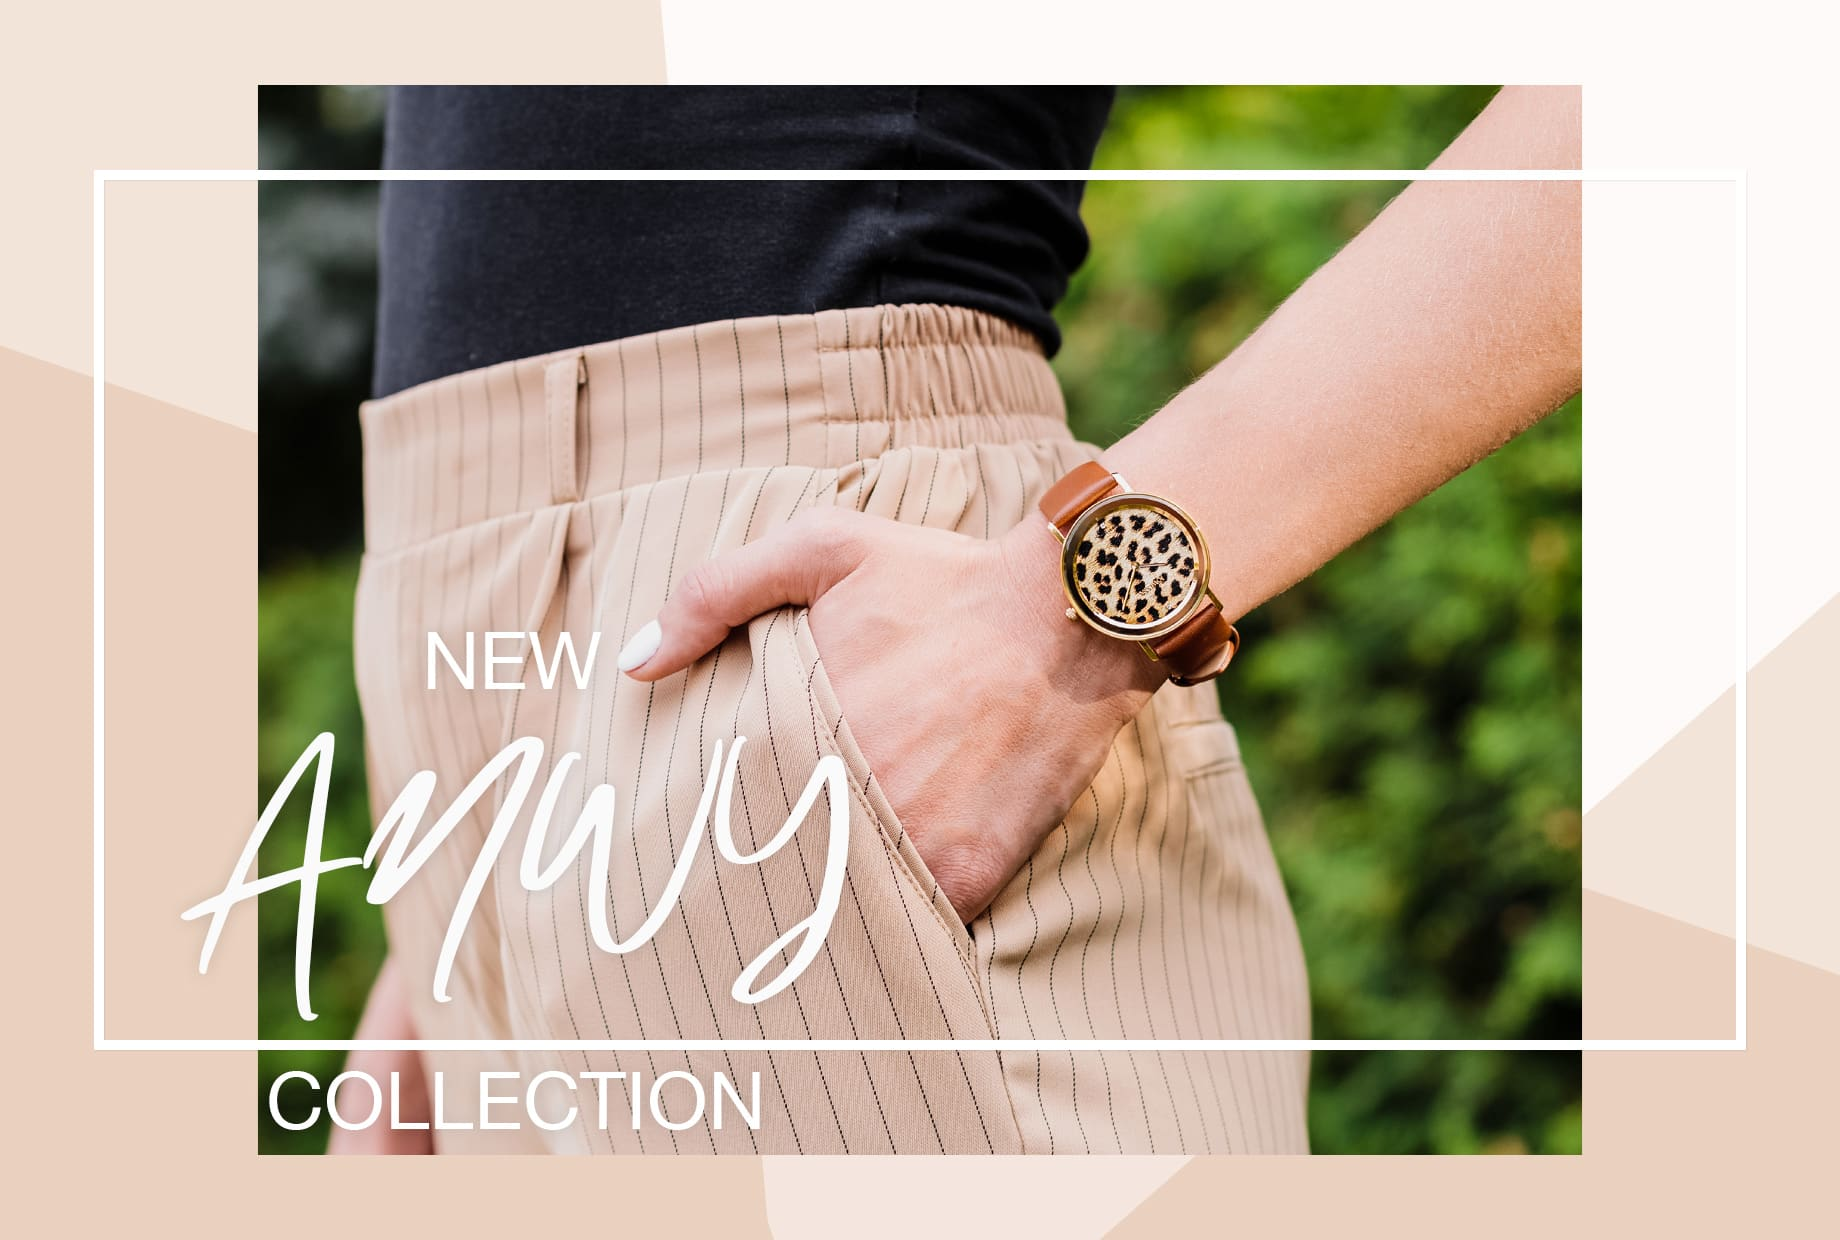 New AnWy Collection with Animal Print by Jowissa. Woman with hand in her pocket wearing a swiss made ladies watch